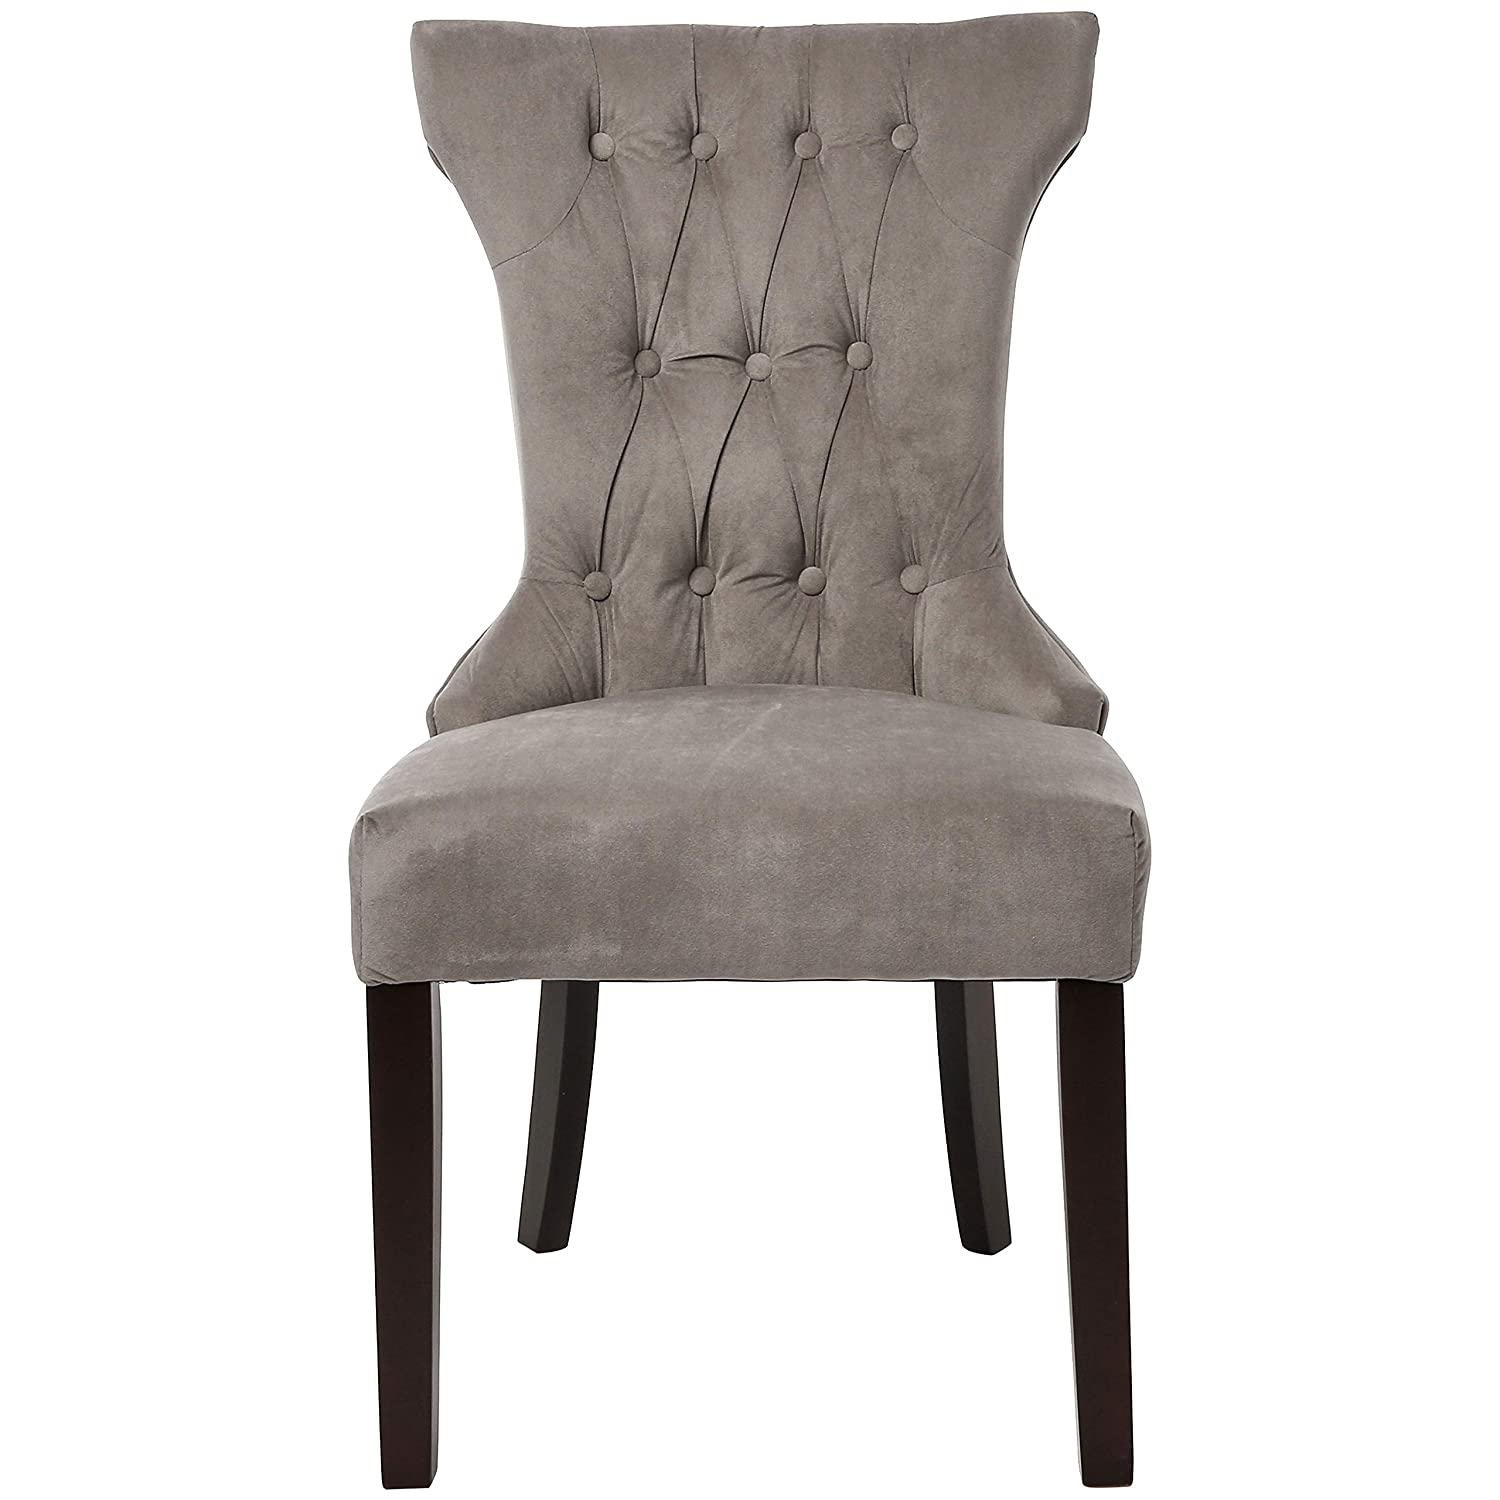 Red Hook Mitros Tufted Upholstered Armless Dining Chair – Set of 2, Taupe